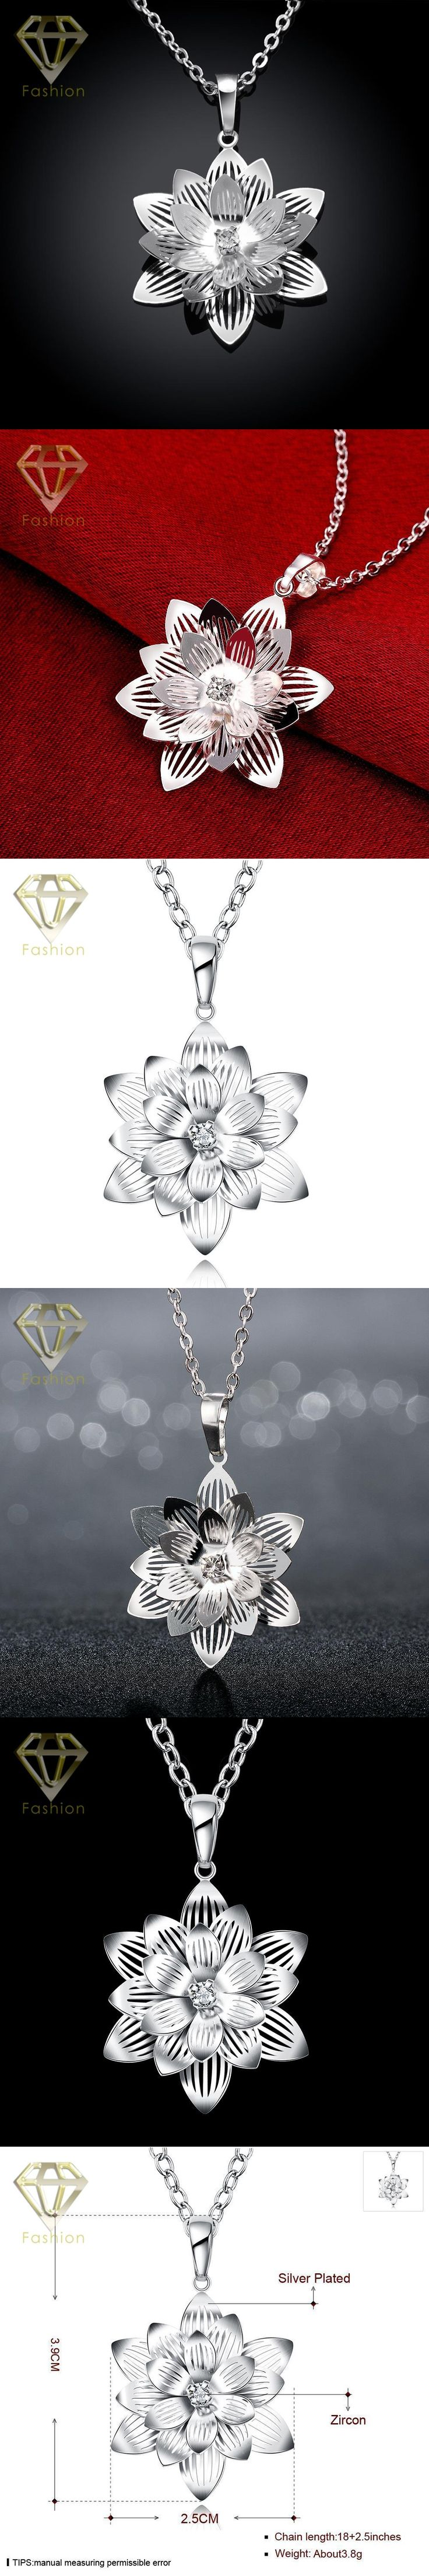 Mother Daughter Necklace New Design Fashion Elagant Silver Plated Jewelry Long Chain Big Lotus Flower Pendant Necklace for Women